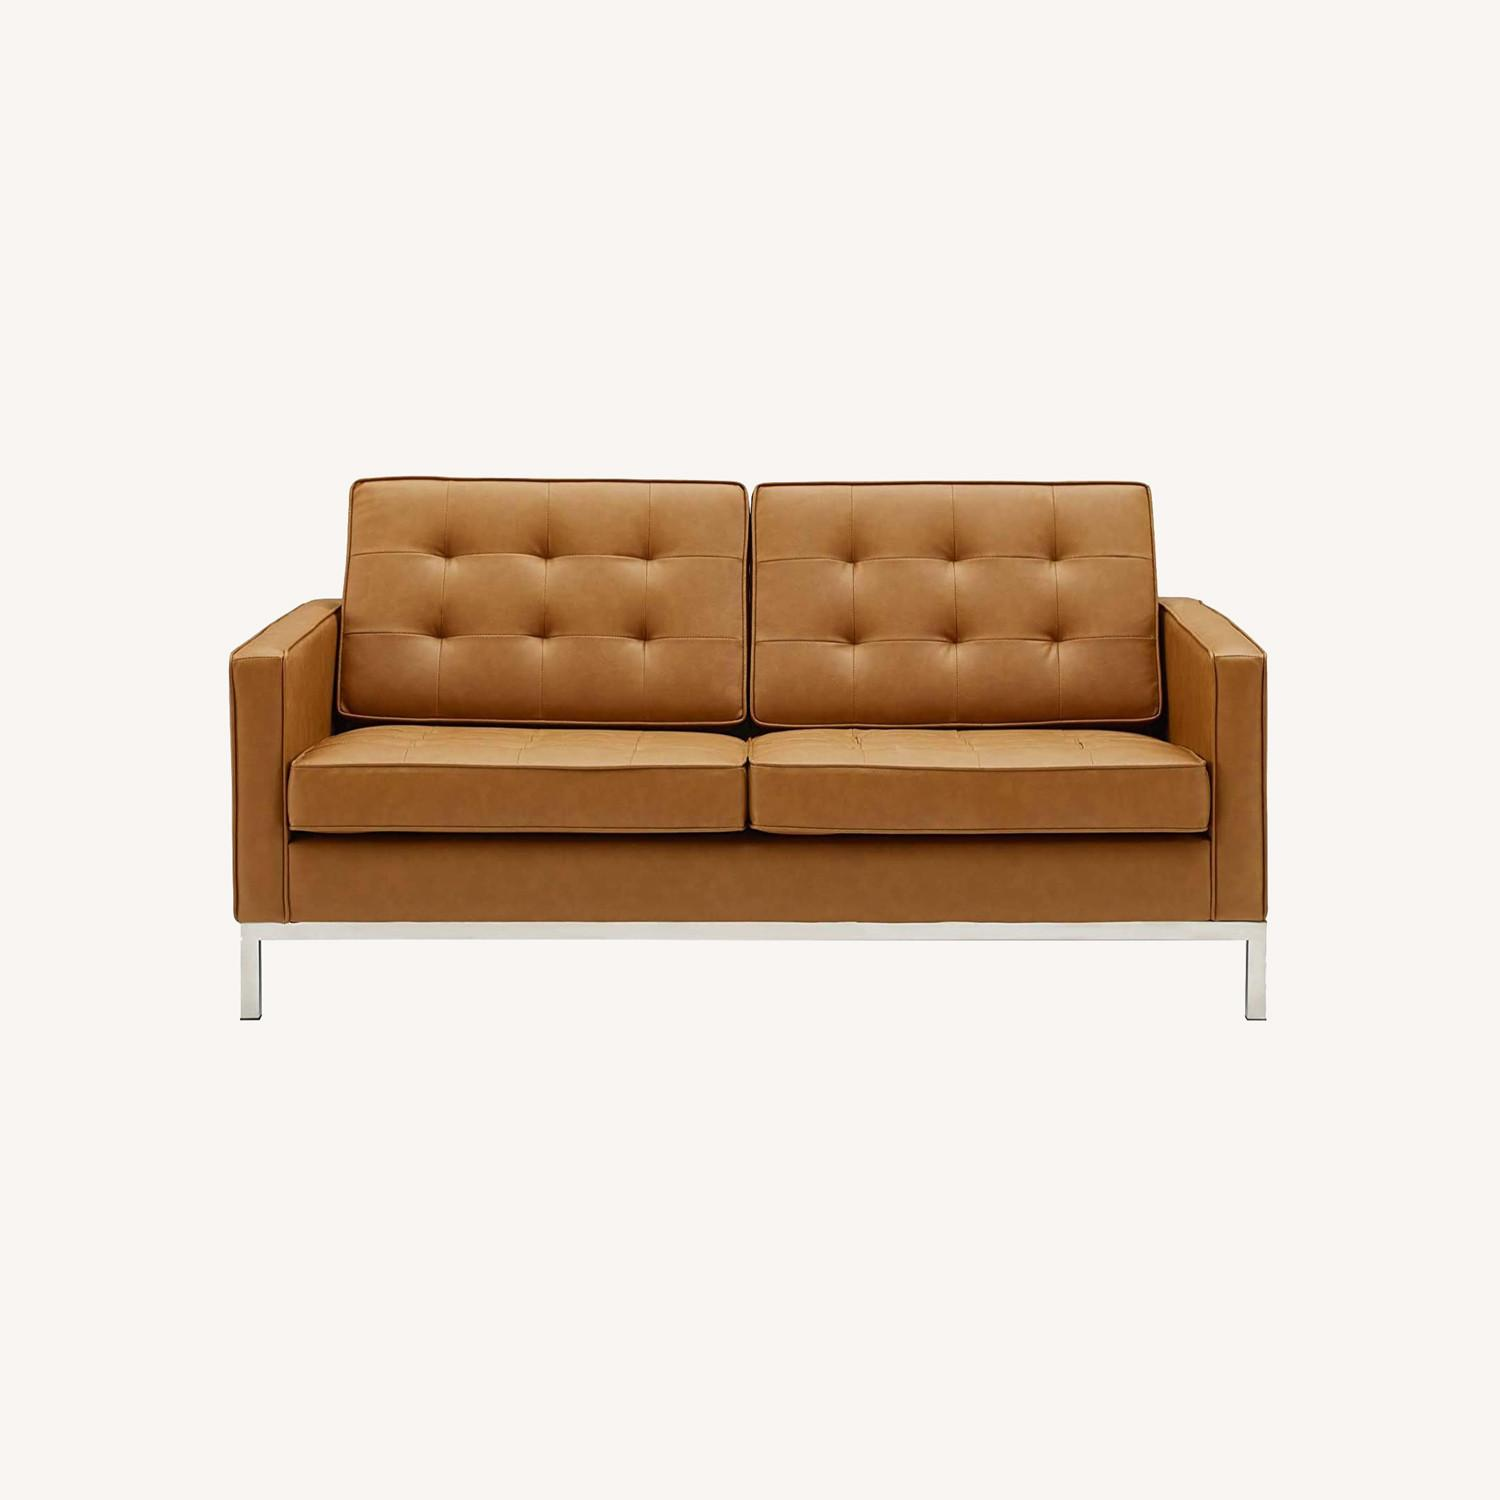 Modern Loveseat In Silver Tan Faux Leather Finish - image-6